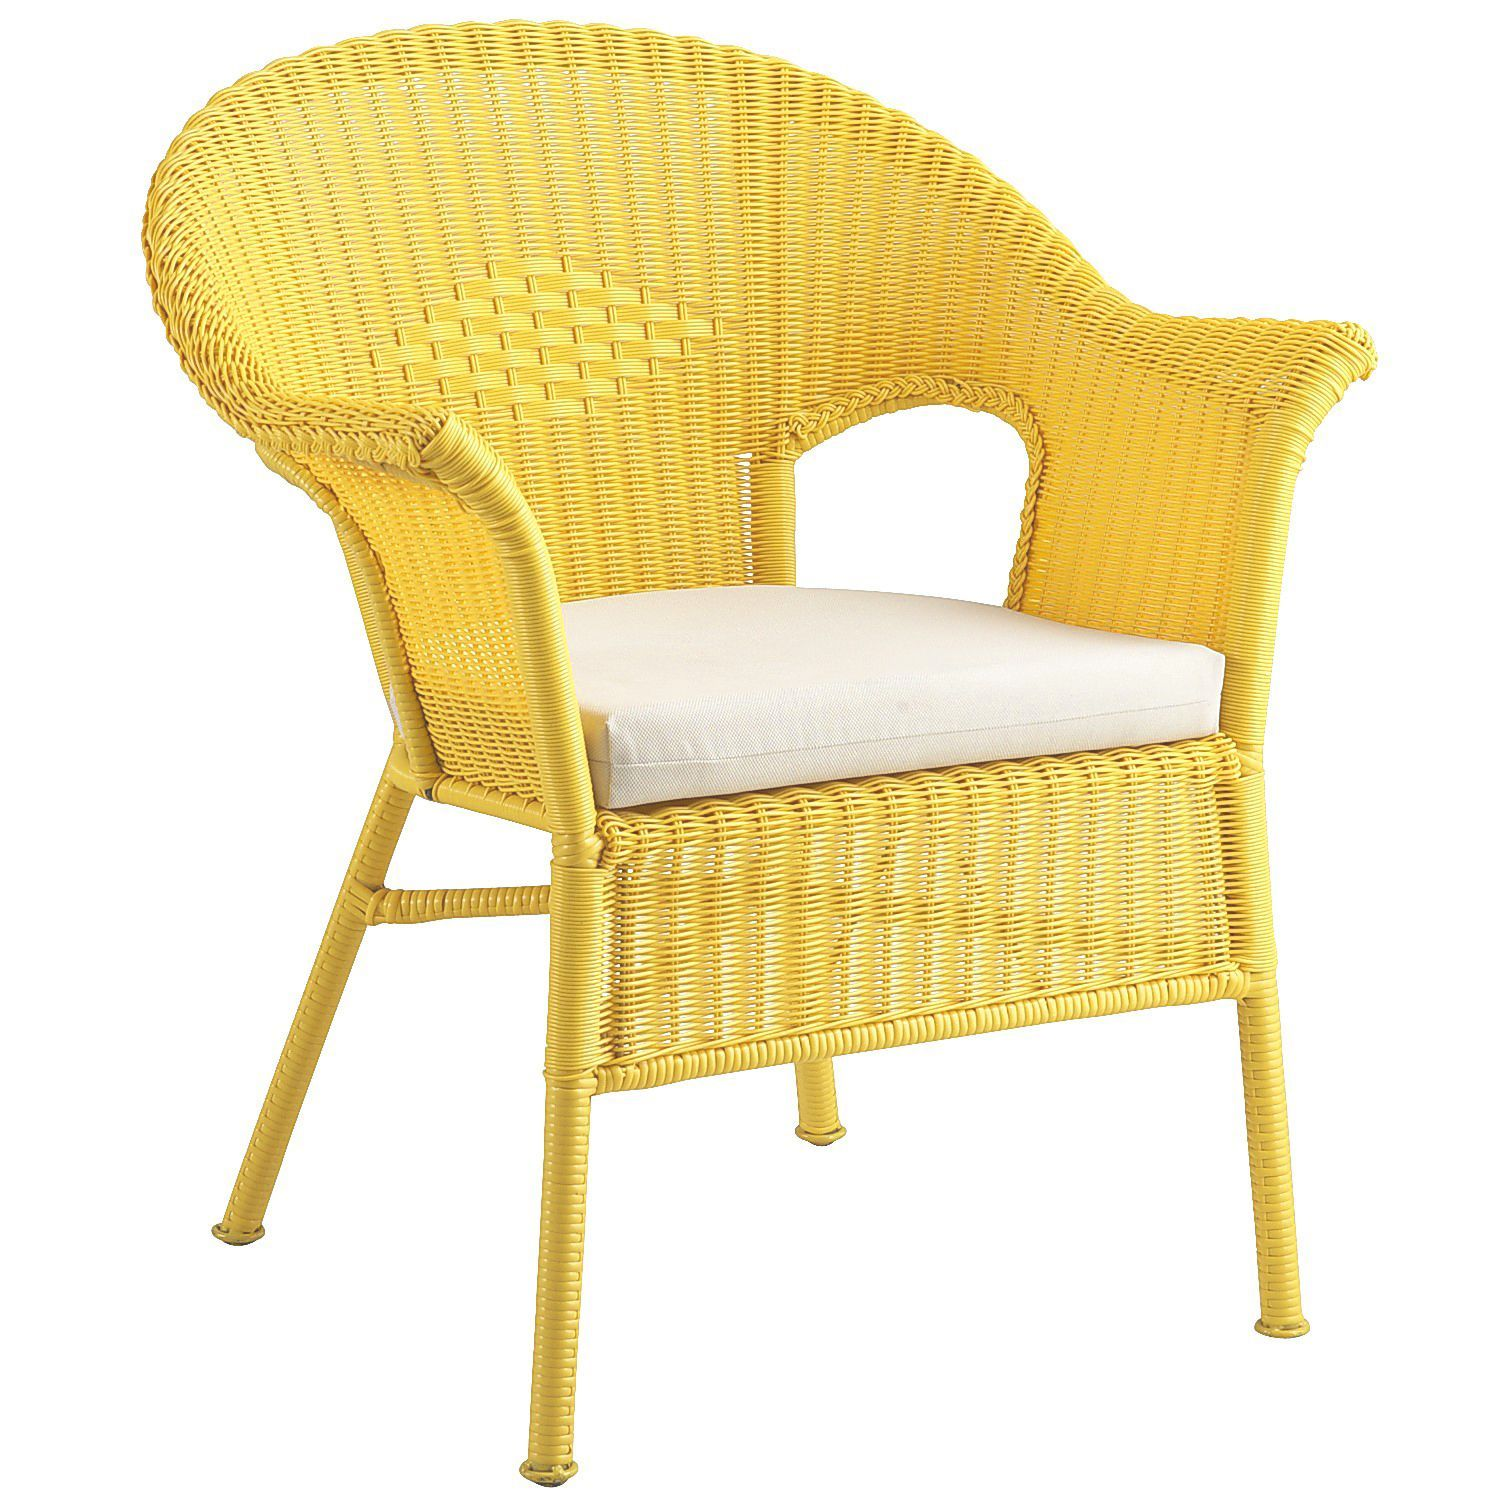 Casbah Wicker Chair - Yellow - Outdoor